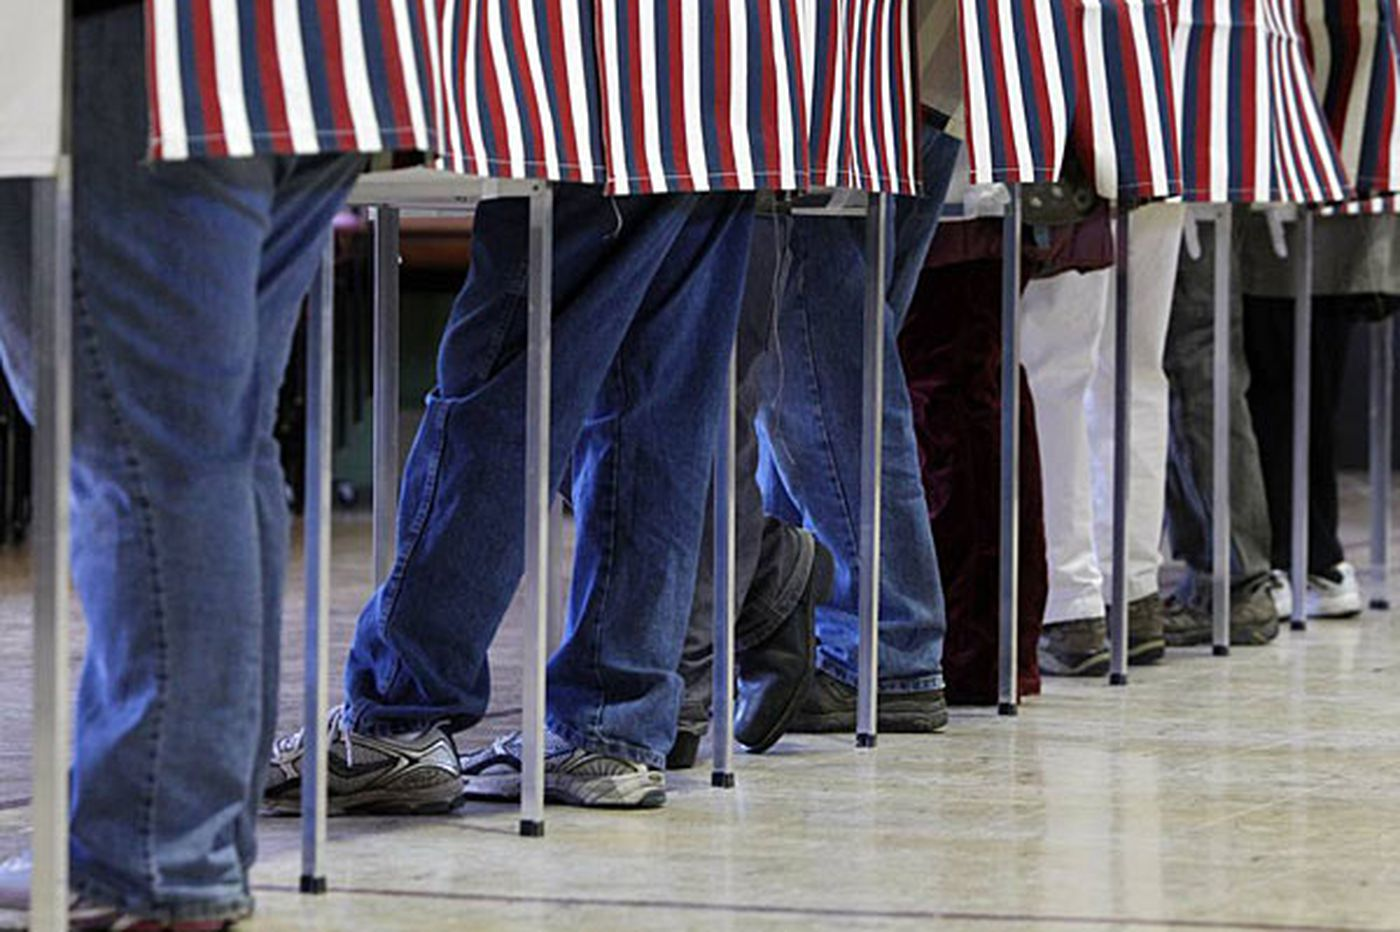 If you want to vote more easily, you gotta move